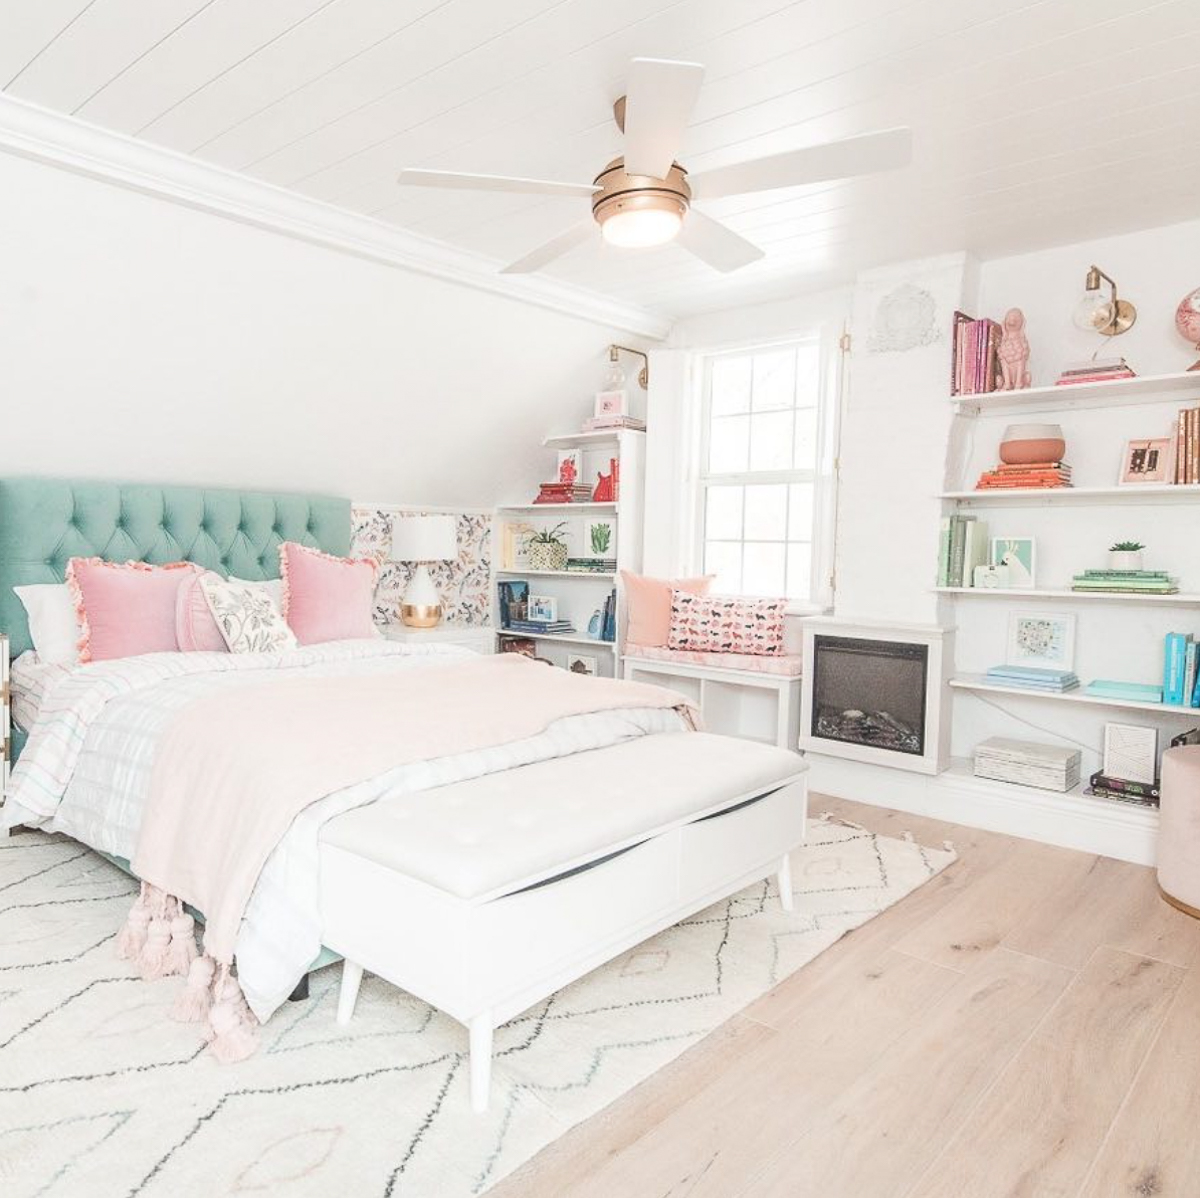 Beautiful white bedroom with colorful accessories and thrifted finds kellyelko.com